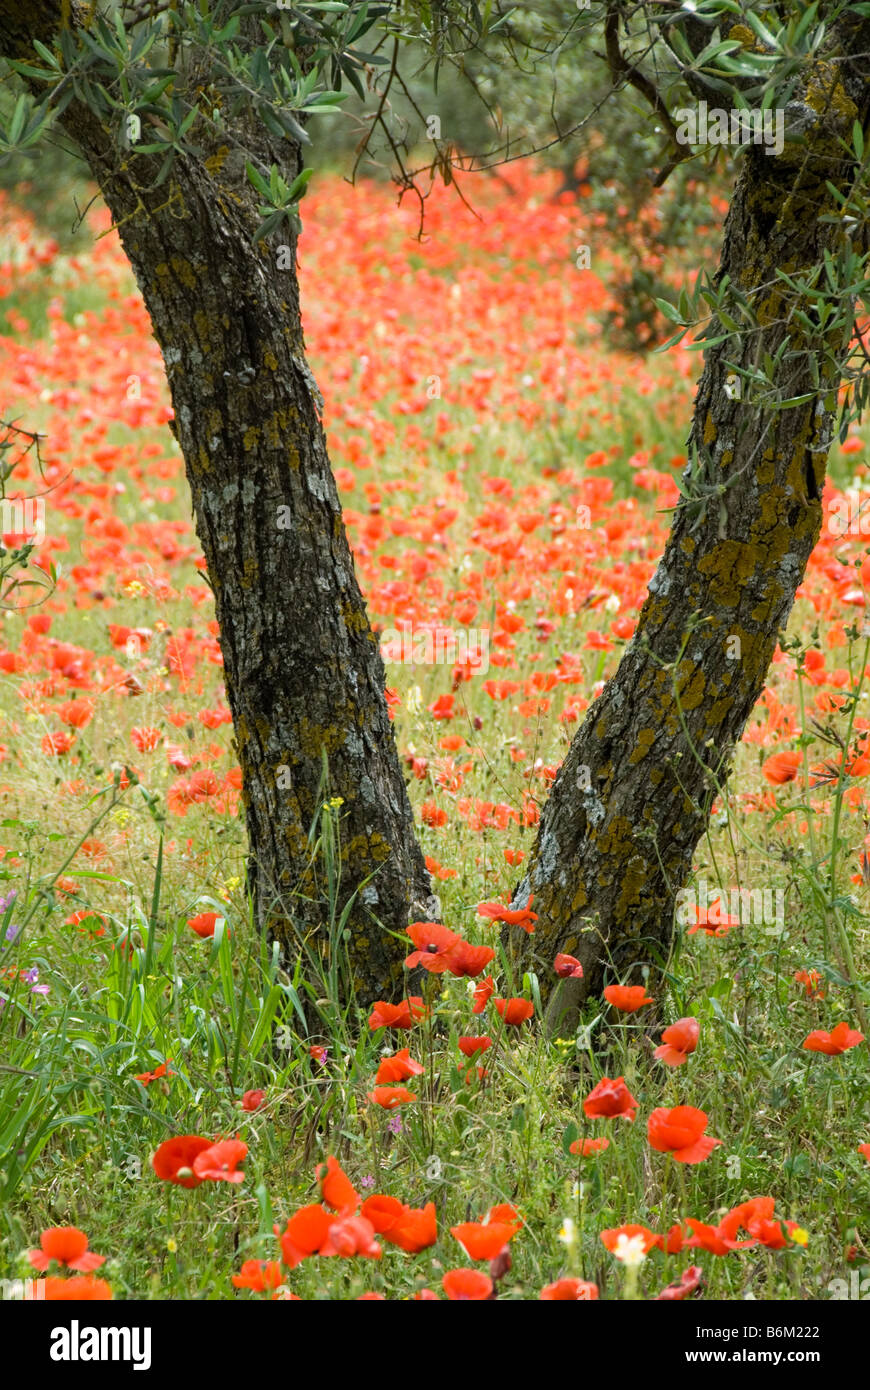 Poppies Olive trees Olive grove wild flowers bark spring springtime Travel red green nature earth tones poppy - Stock Image